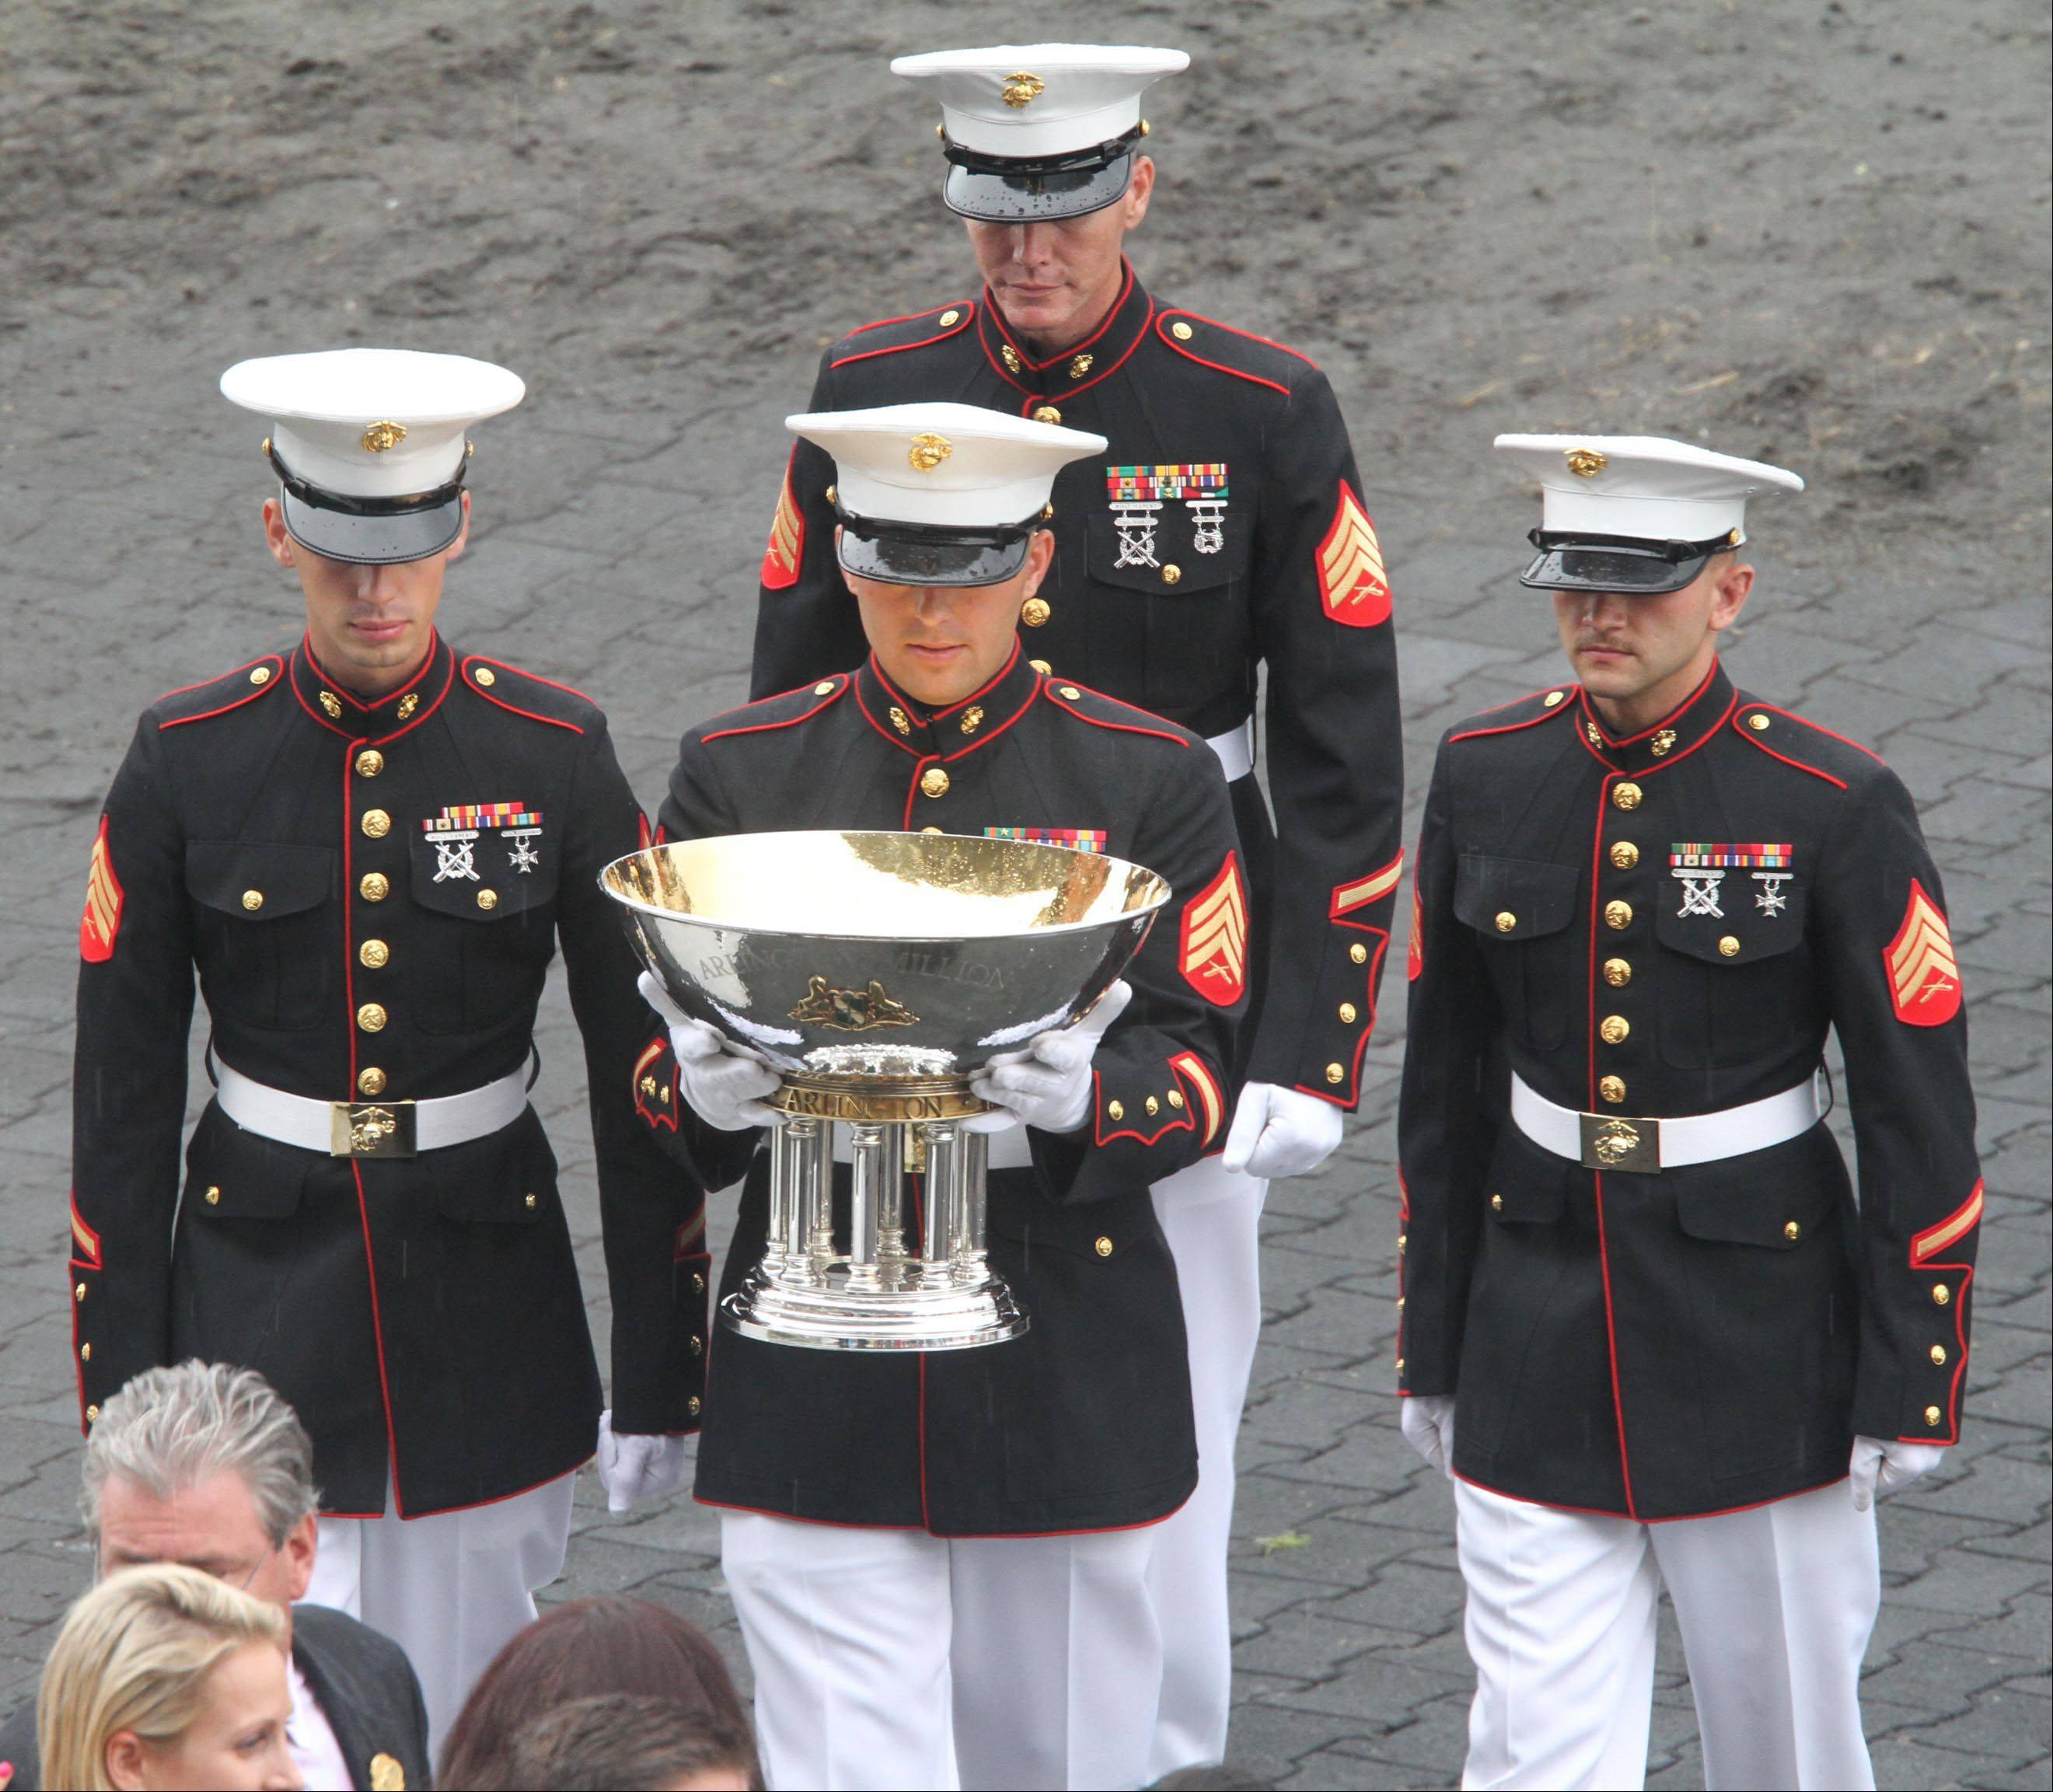 A Marine color guard appears with the Arlington Million trophy.